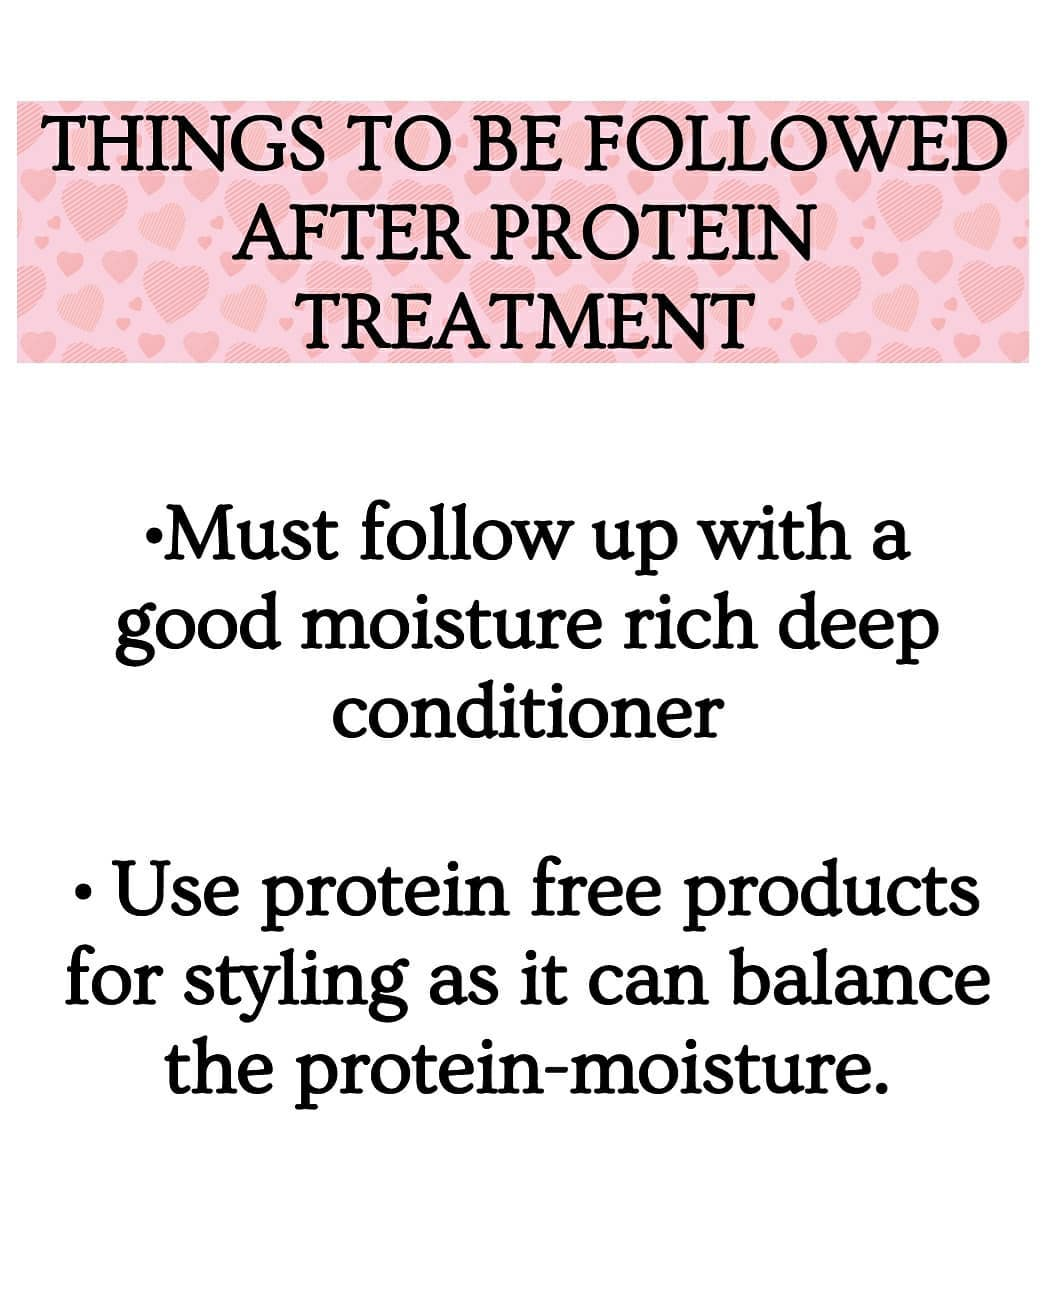 Protein Treatment for Hair Maintenance - What to Do After Protein Hair Treatment